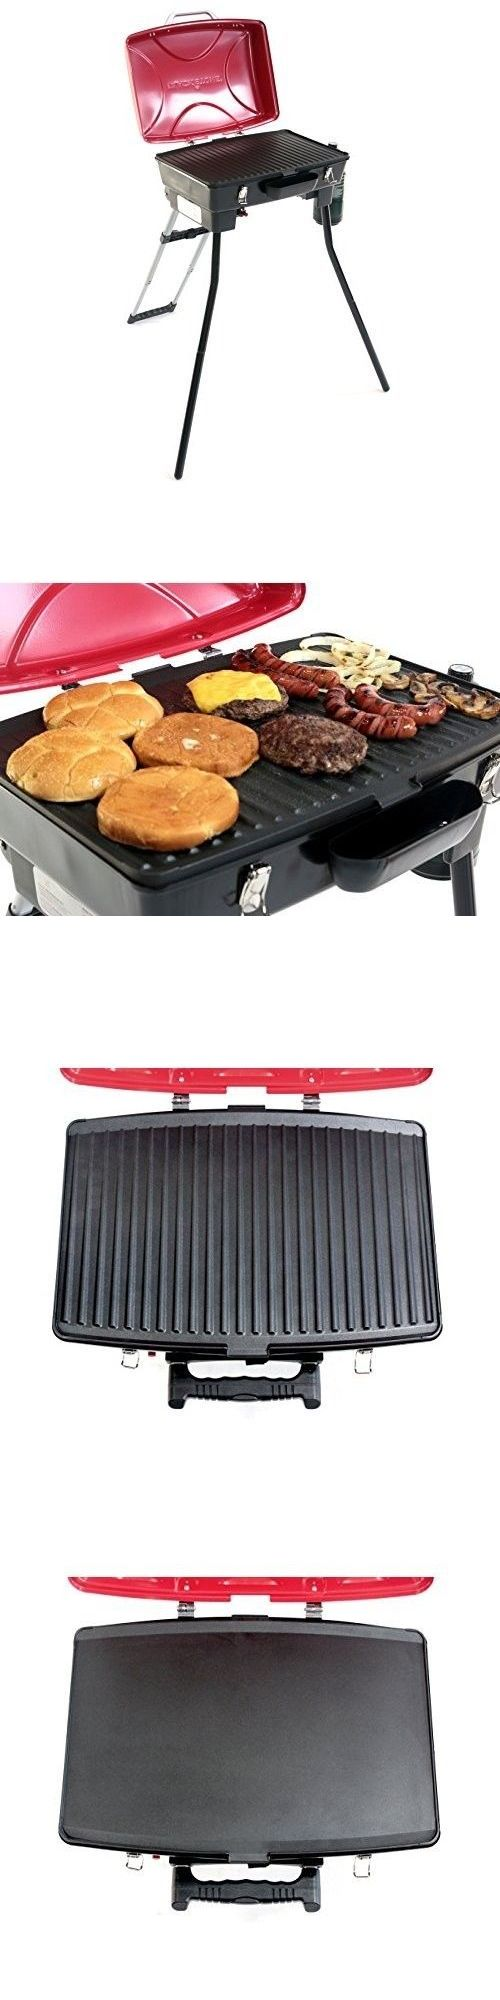 Camping BBQs and Grills 181388: Portable Gas Bbq Grill Griddle Combo Outdoor Yard Tailgate Camping Patio Propane -> BUY IT NOW ONLY: $129.46 on eBay!